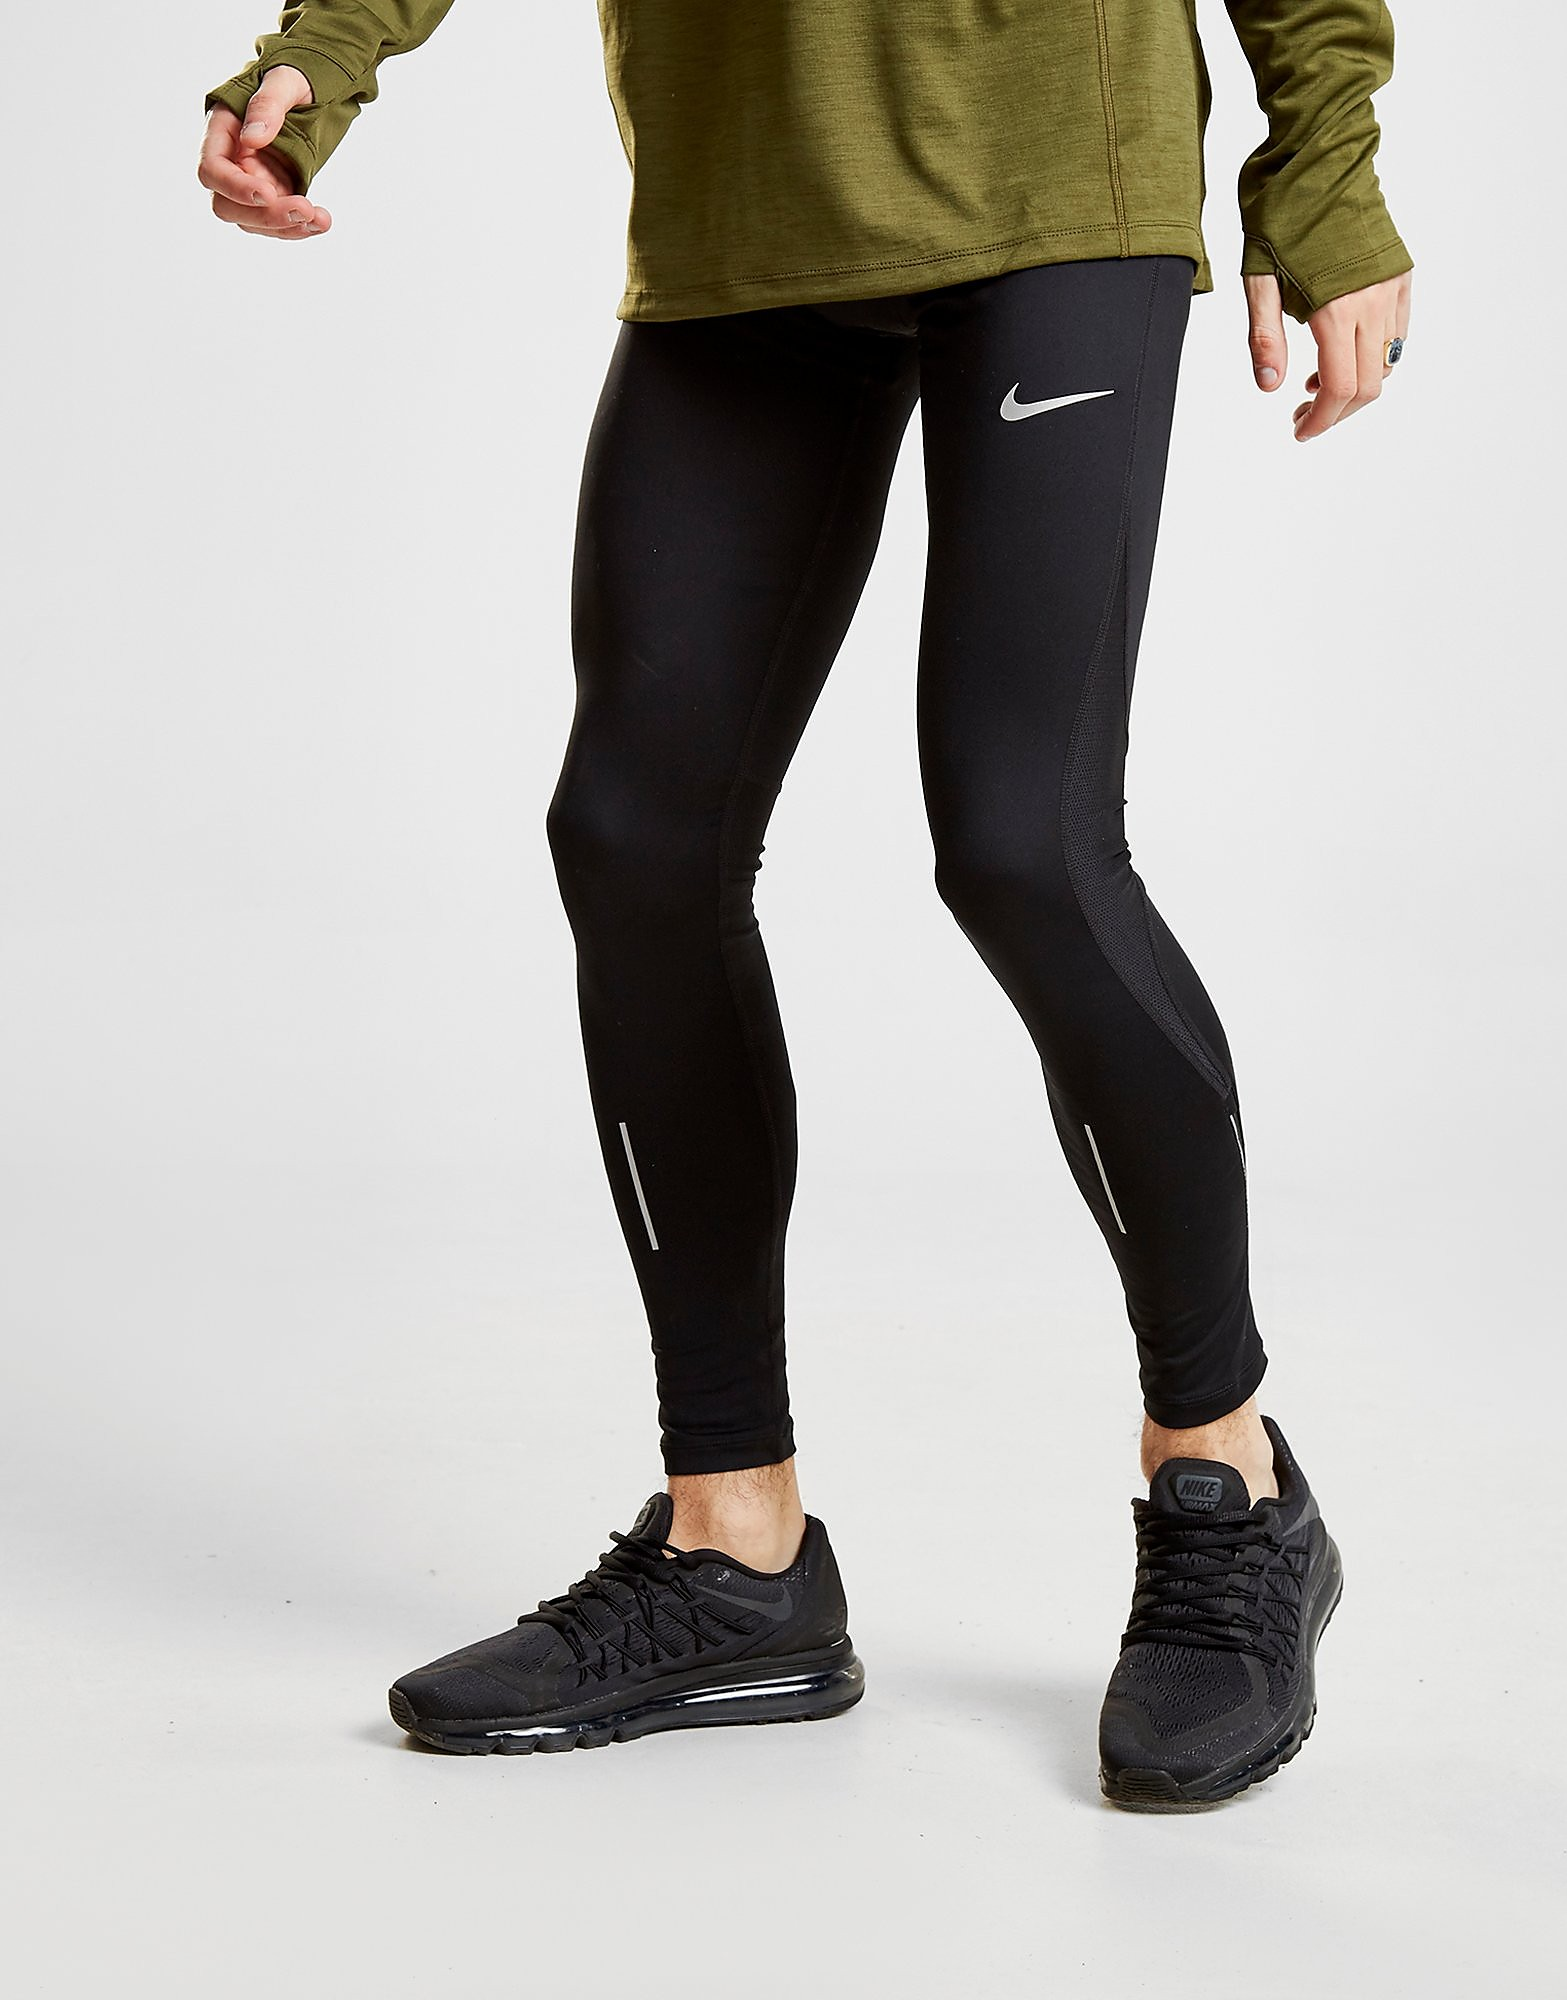 Nike Power Running Strumphosen